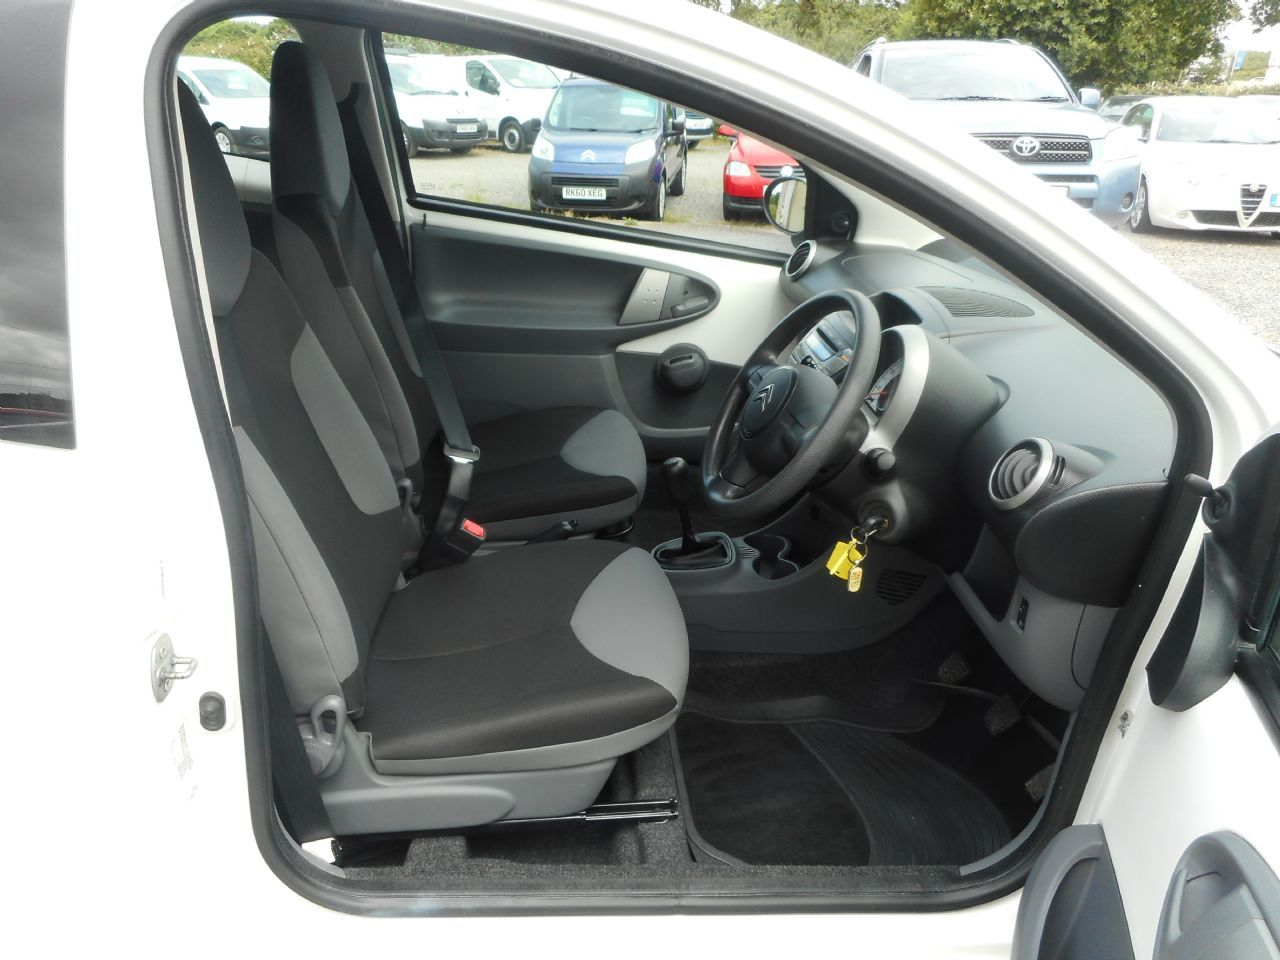 CITROEN C1 1.0i 68hp VTR (2011) - Picture 12